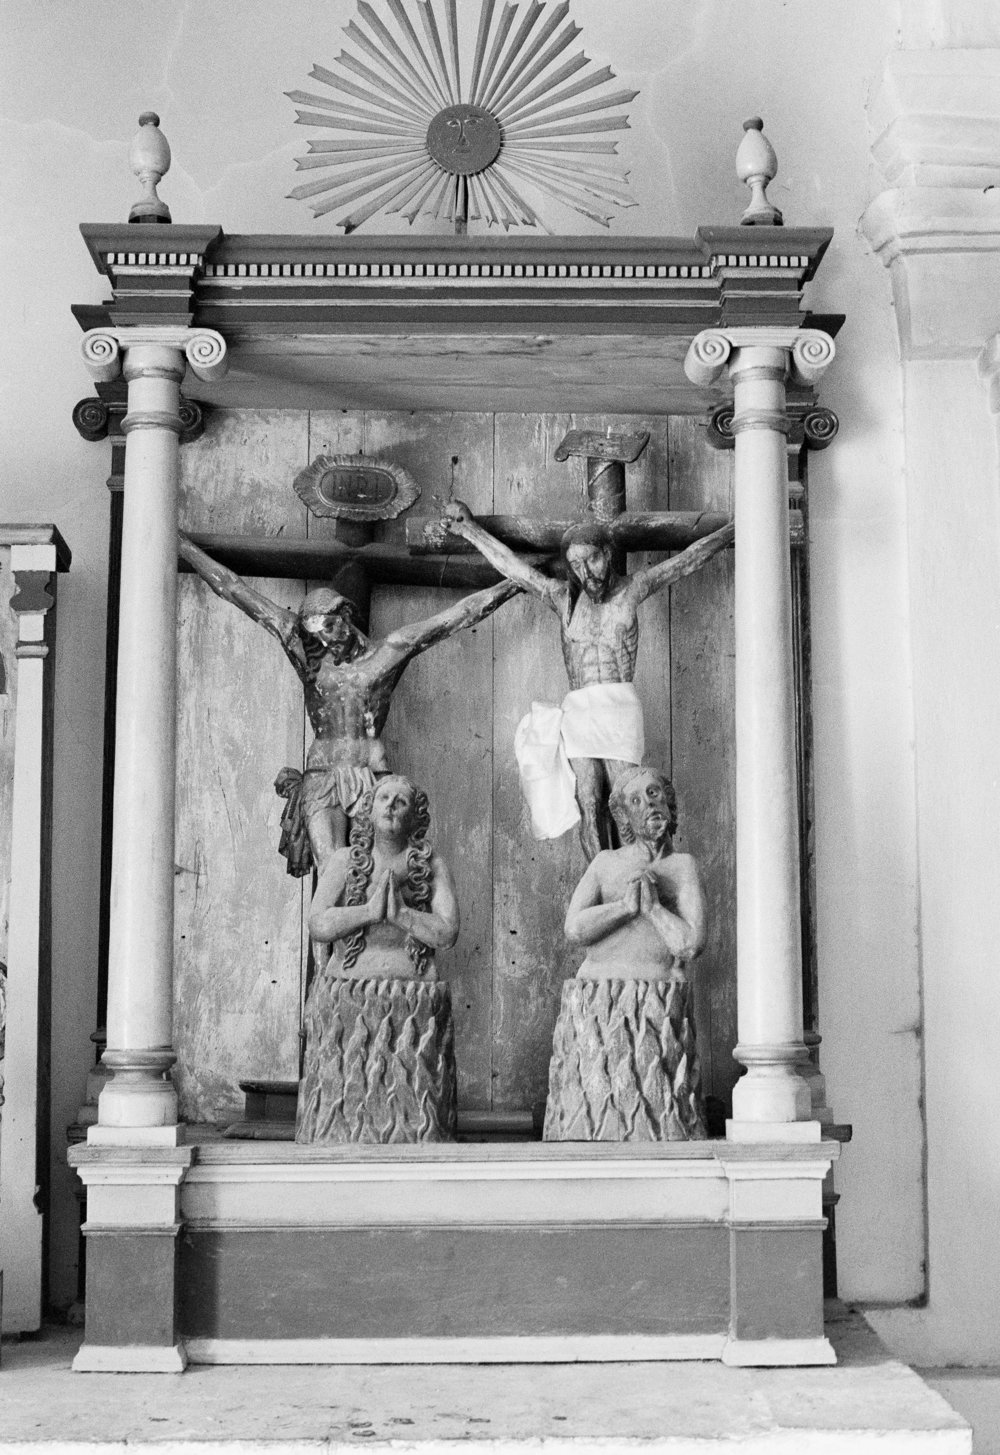 Wooden religious statues stand near the front altar of a Catholic church in Santa Cruz del Quiché, Guatemala, January 1, 1982.